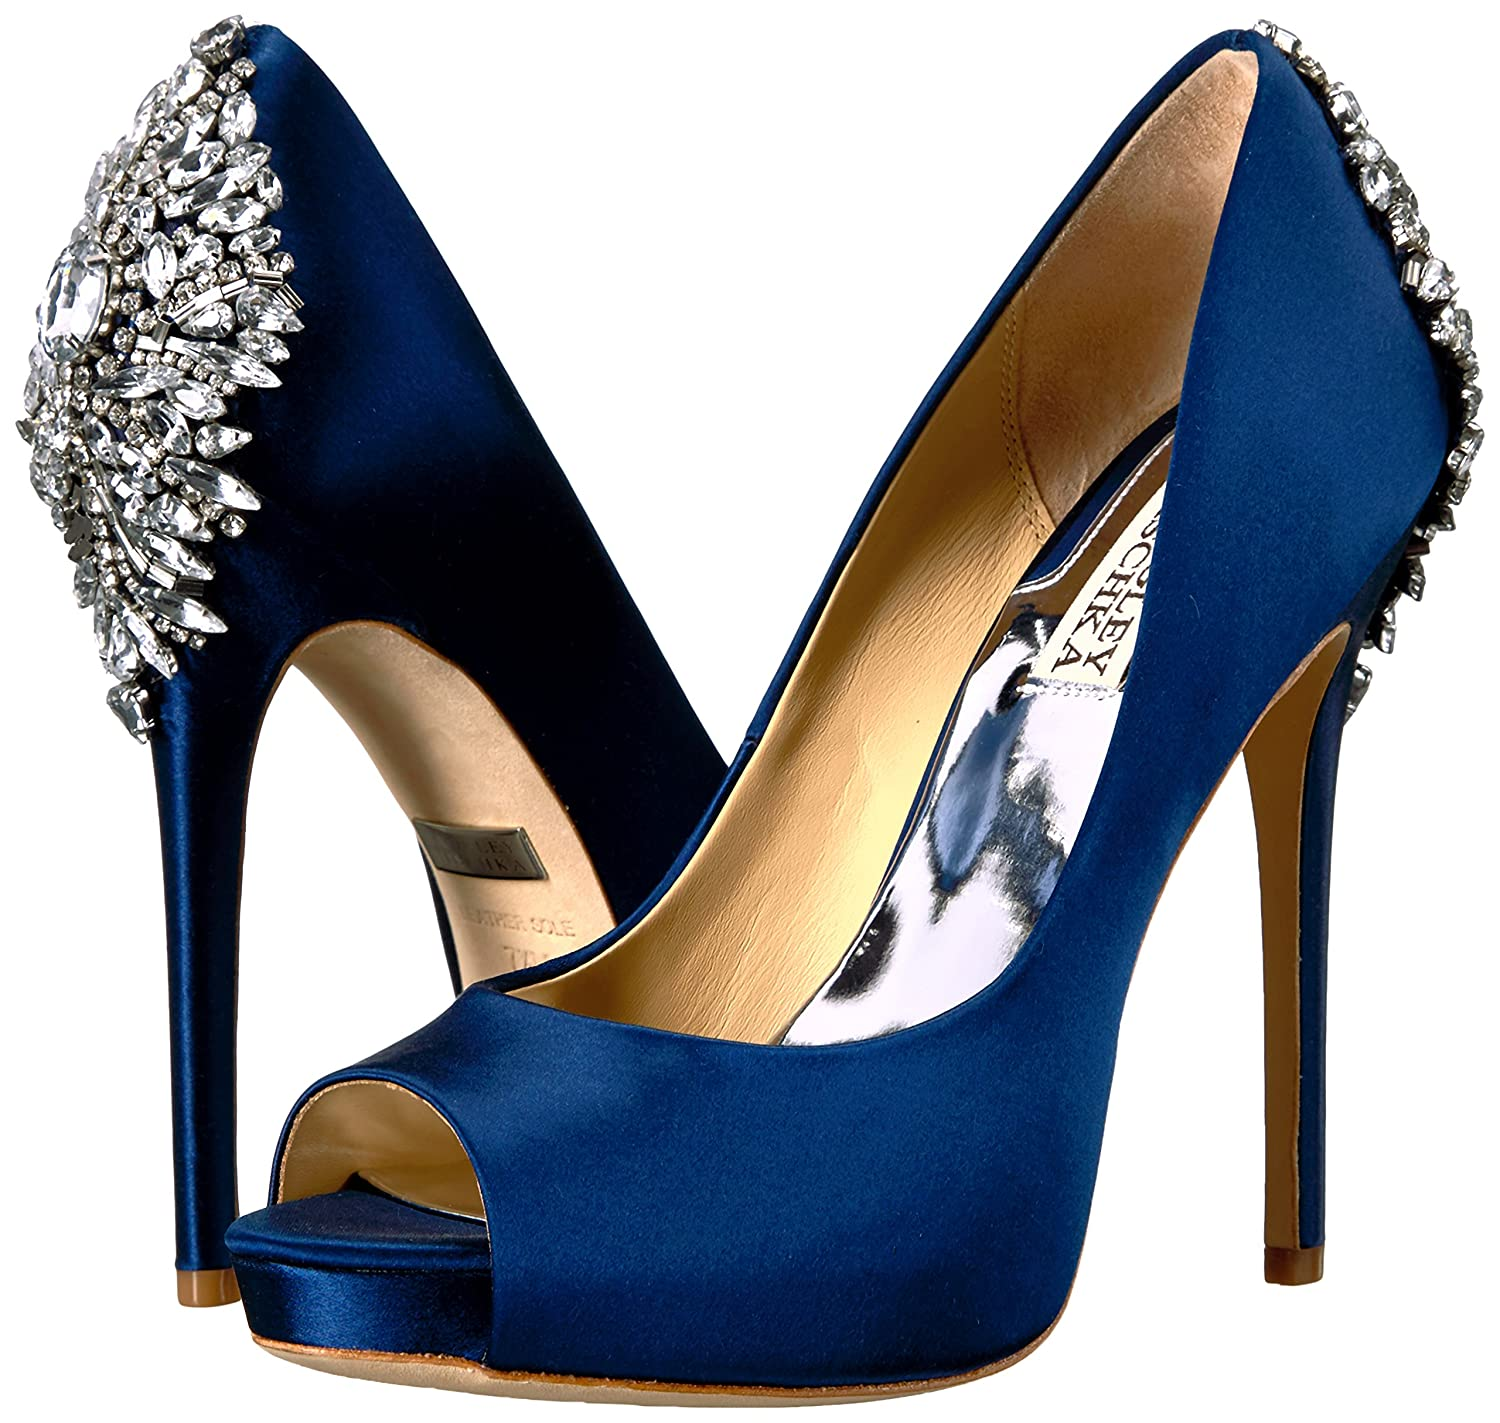 Badgley Mischka Women's Kiara Dress Pump B01N2NIGSX 7.5 B(M) US|Navy